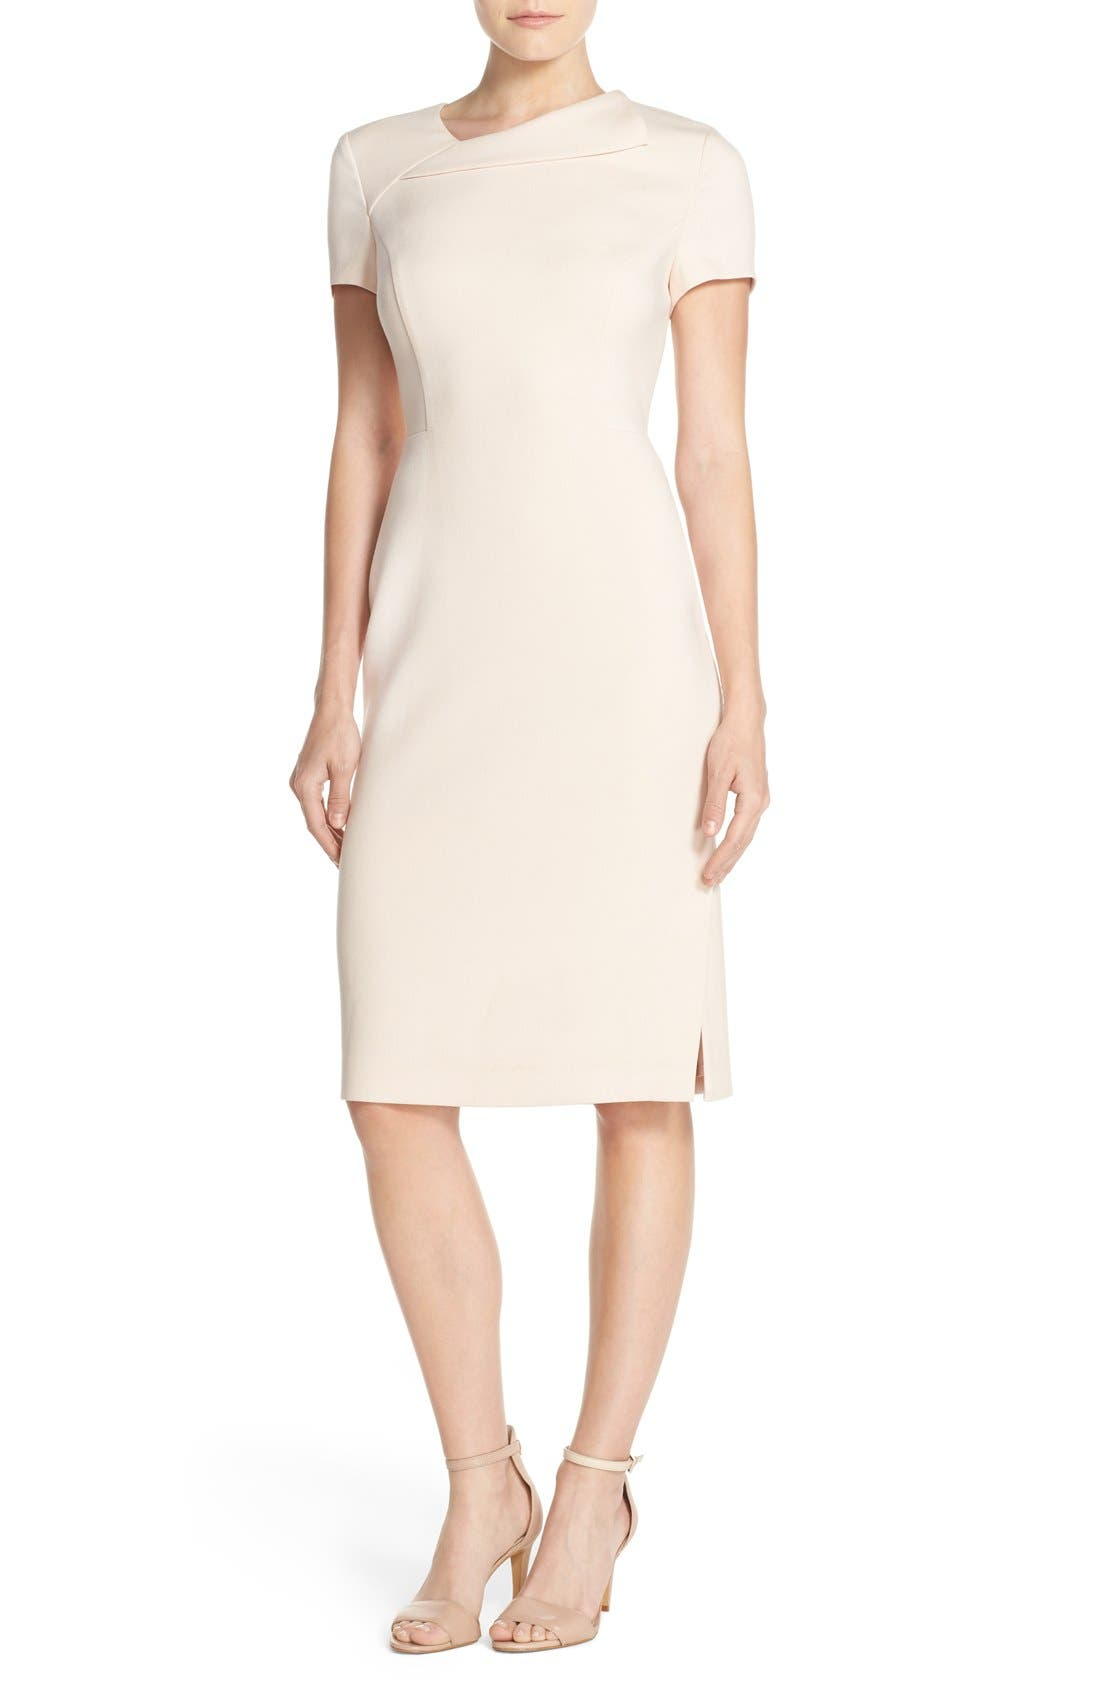 Main Image - Vince Camuto Asymmetrical Crepe Sheath Dress (Regular & Petite)